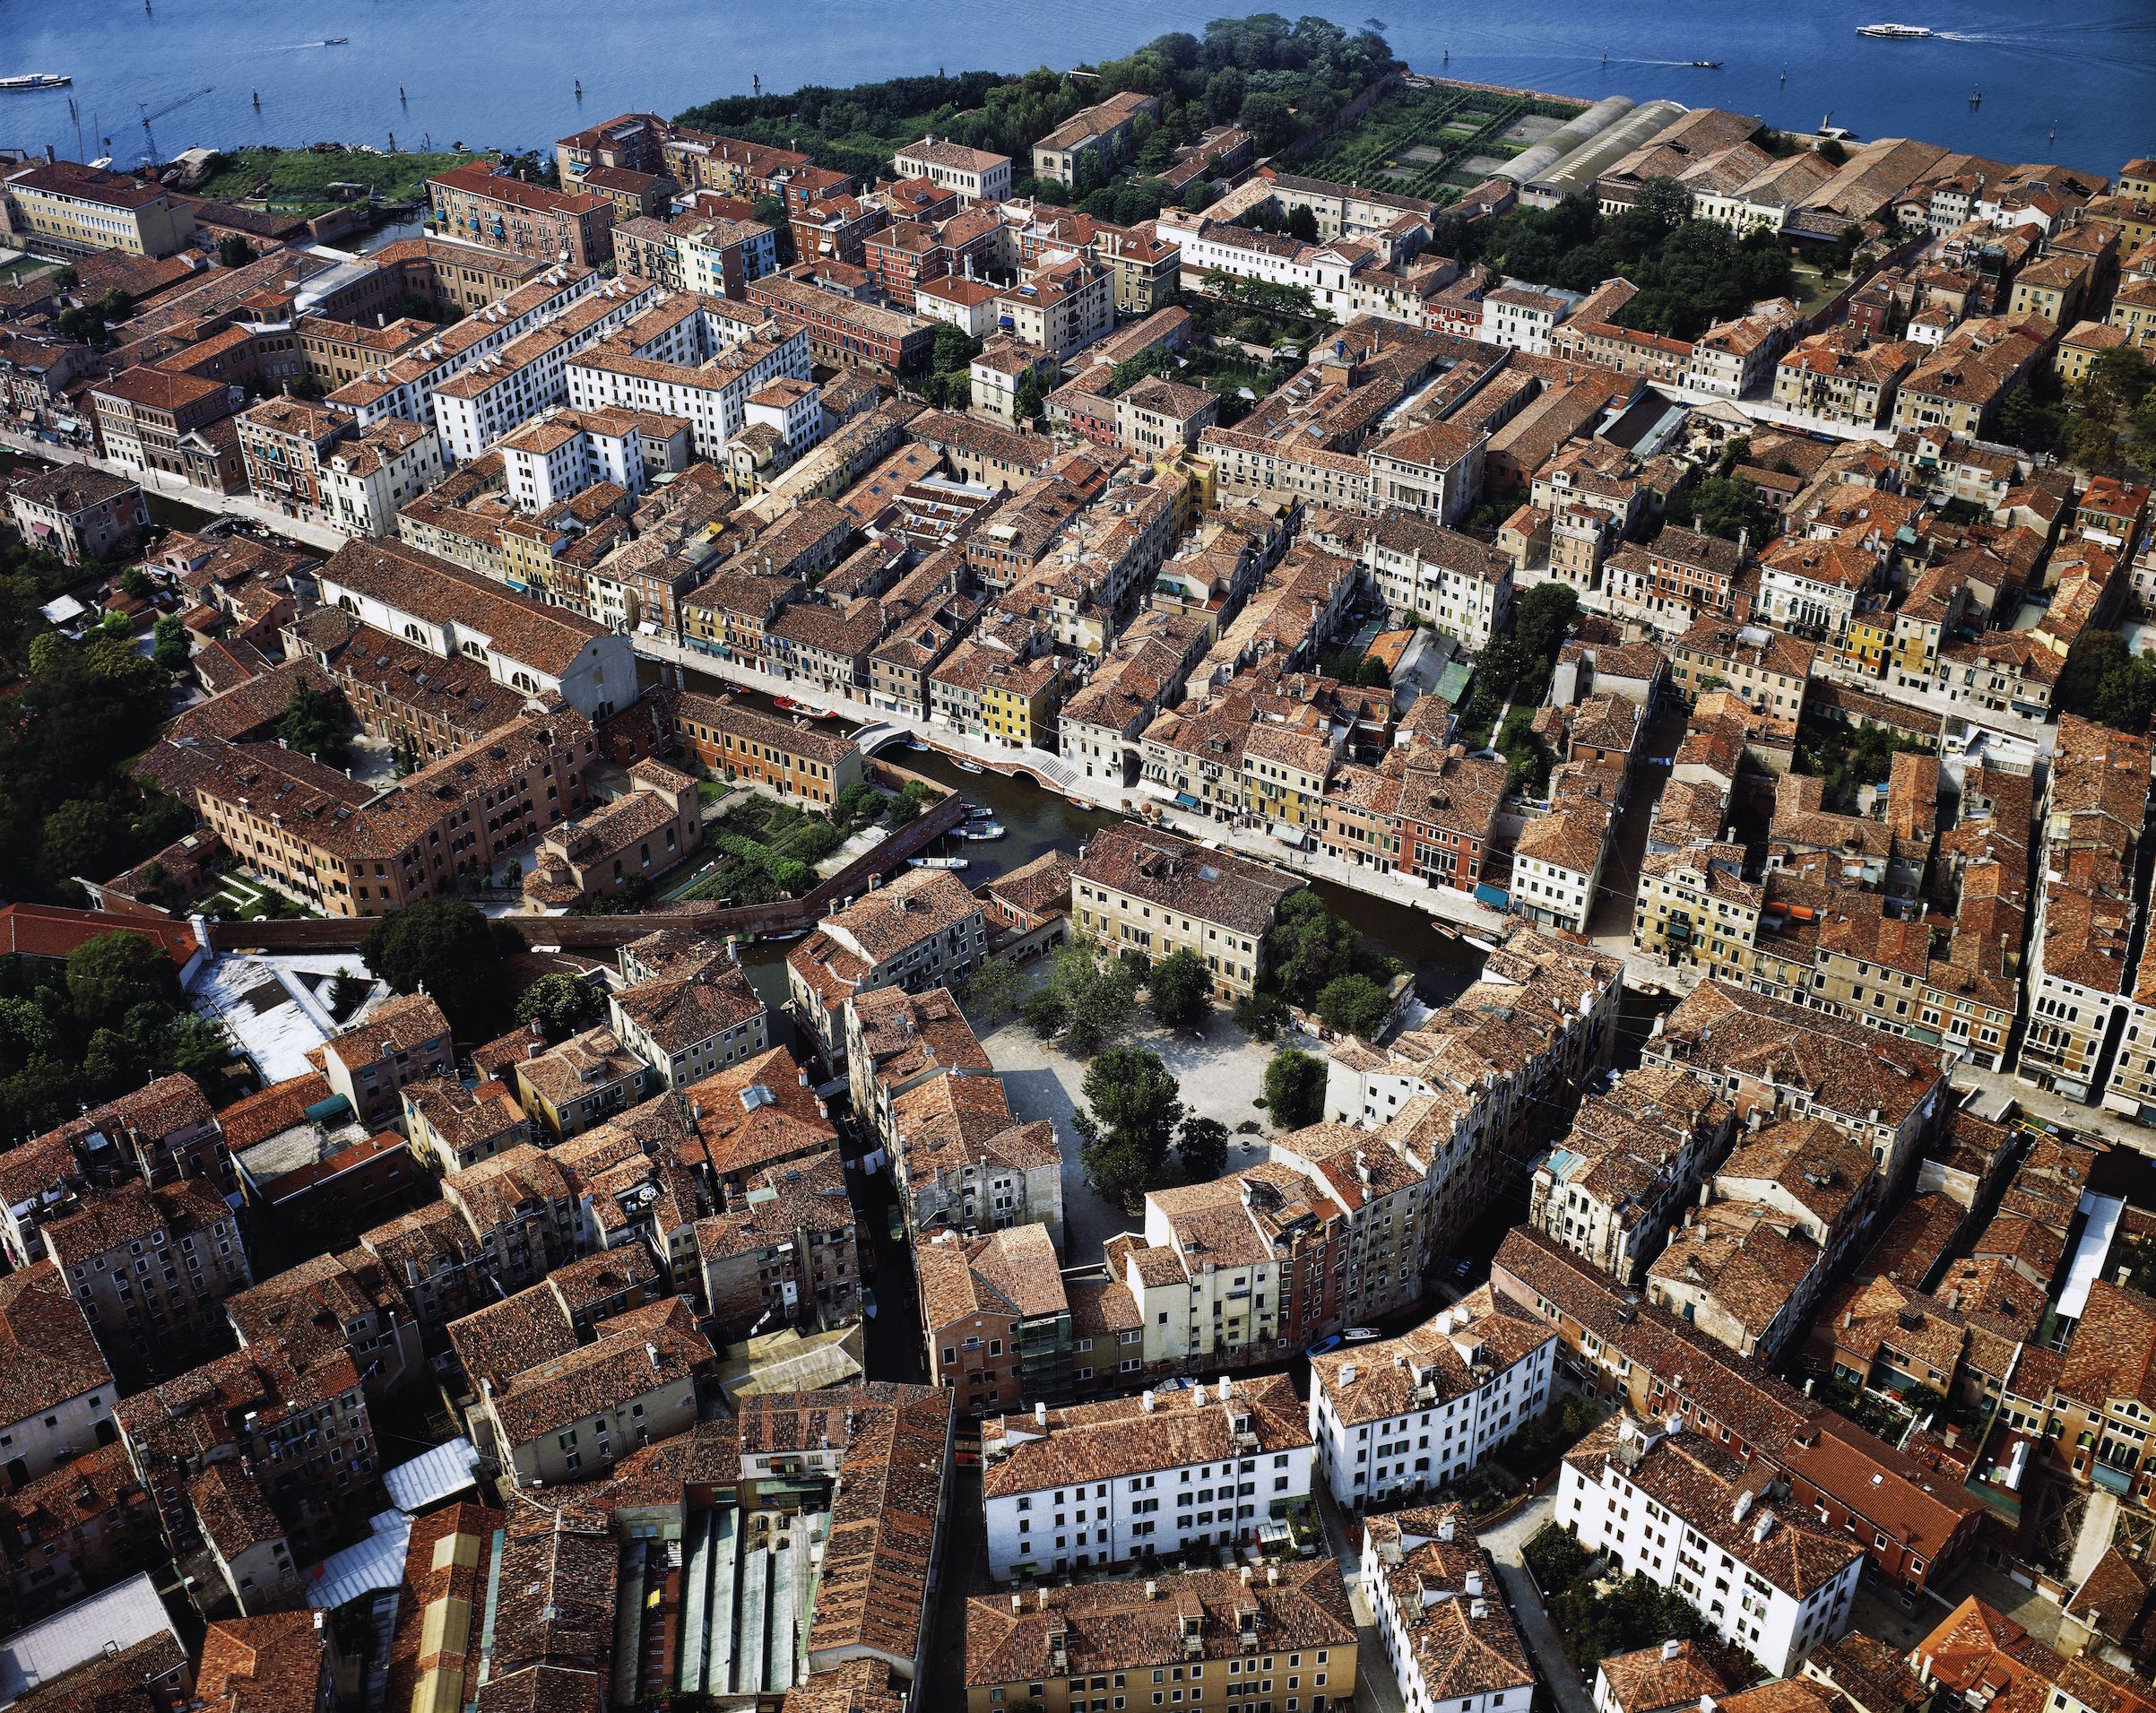 Aerial view of Campo Ghetto Nuovo, Venice